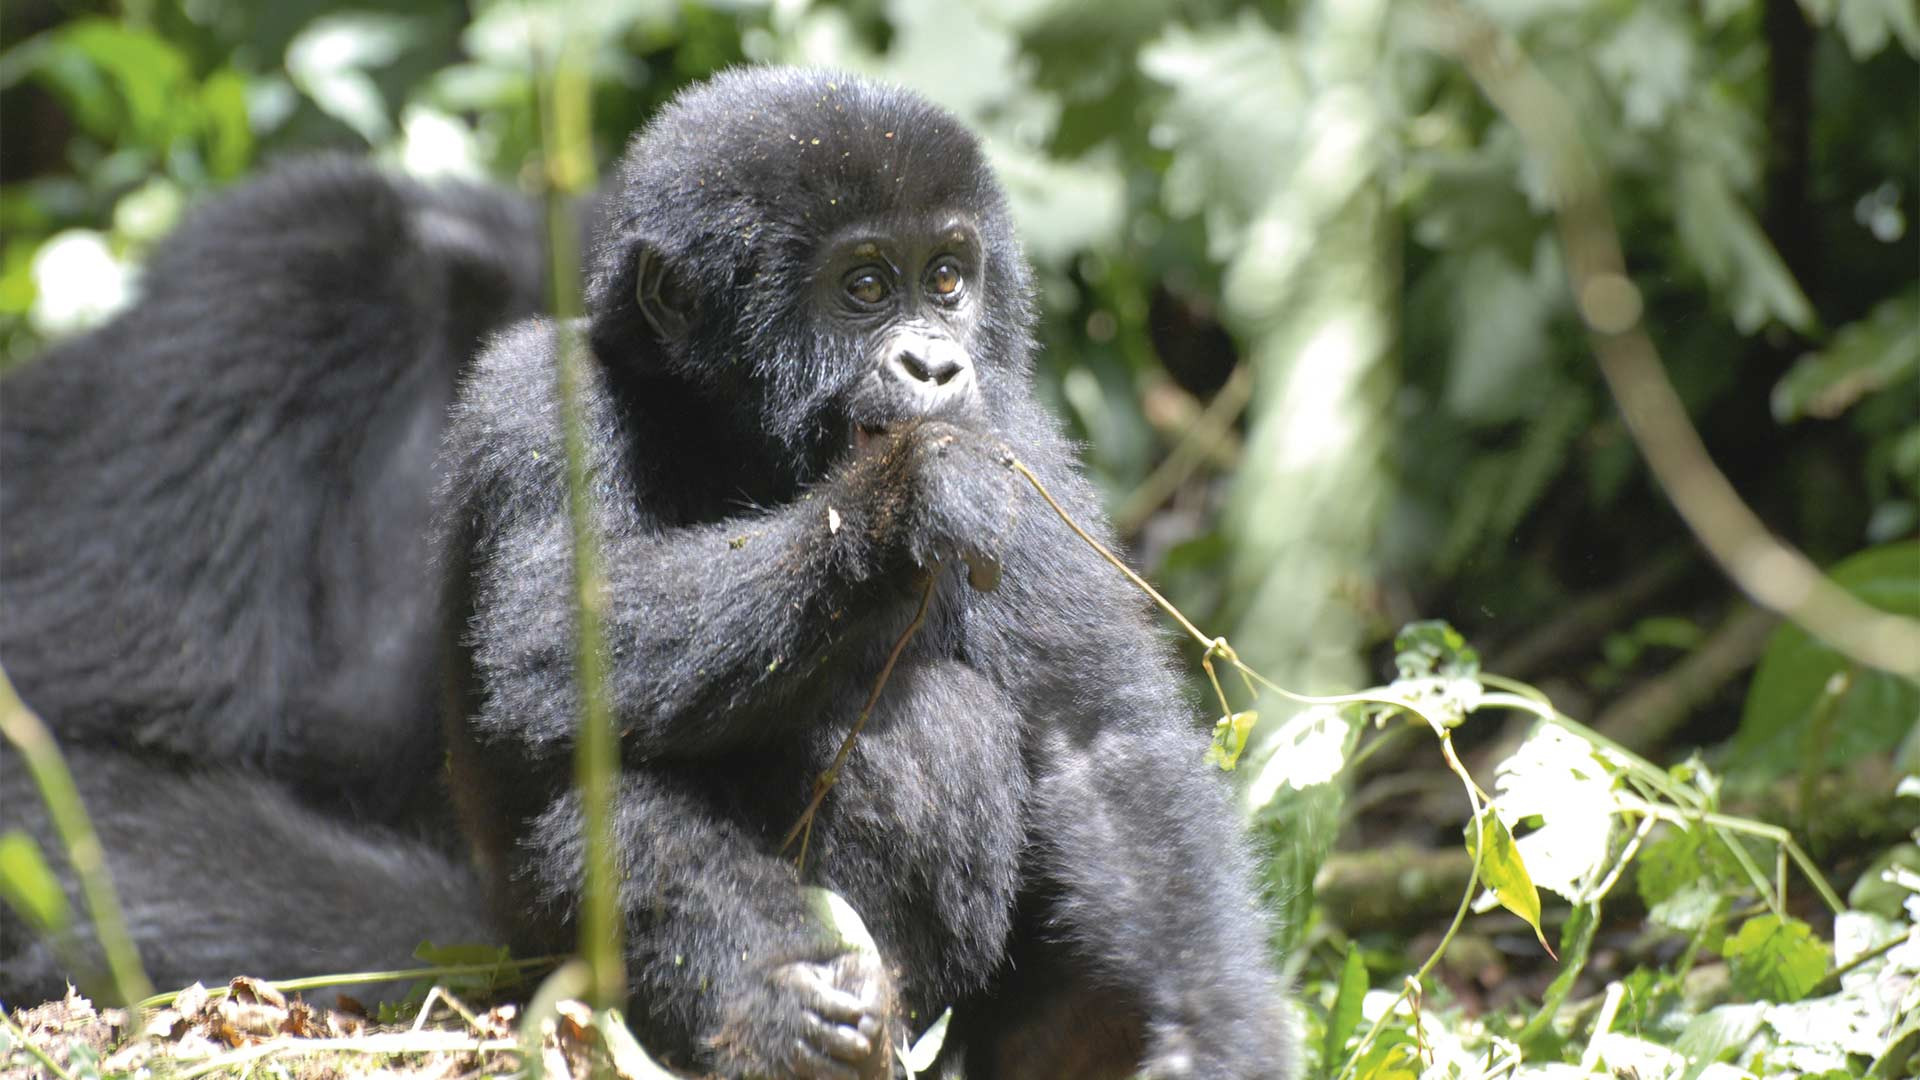 A baby gorilla in the Bwindi Impenetrable Forest, Uganda